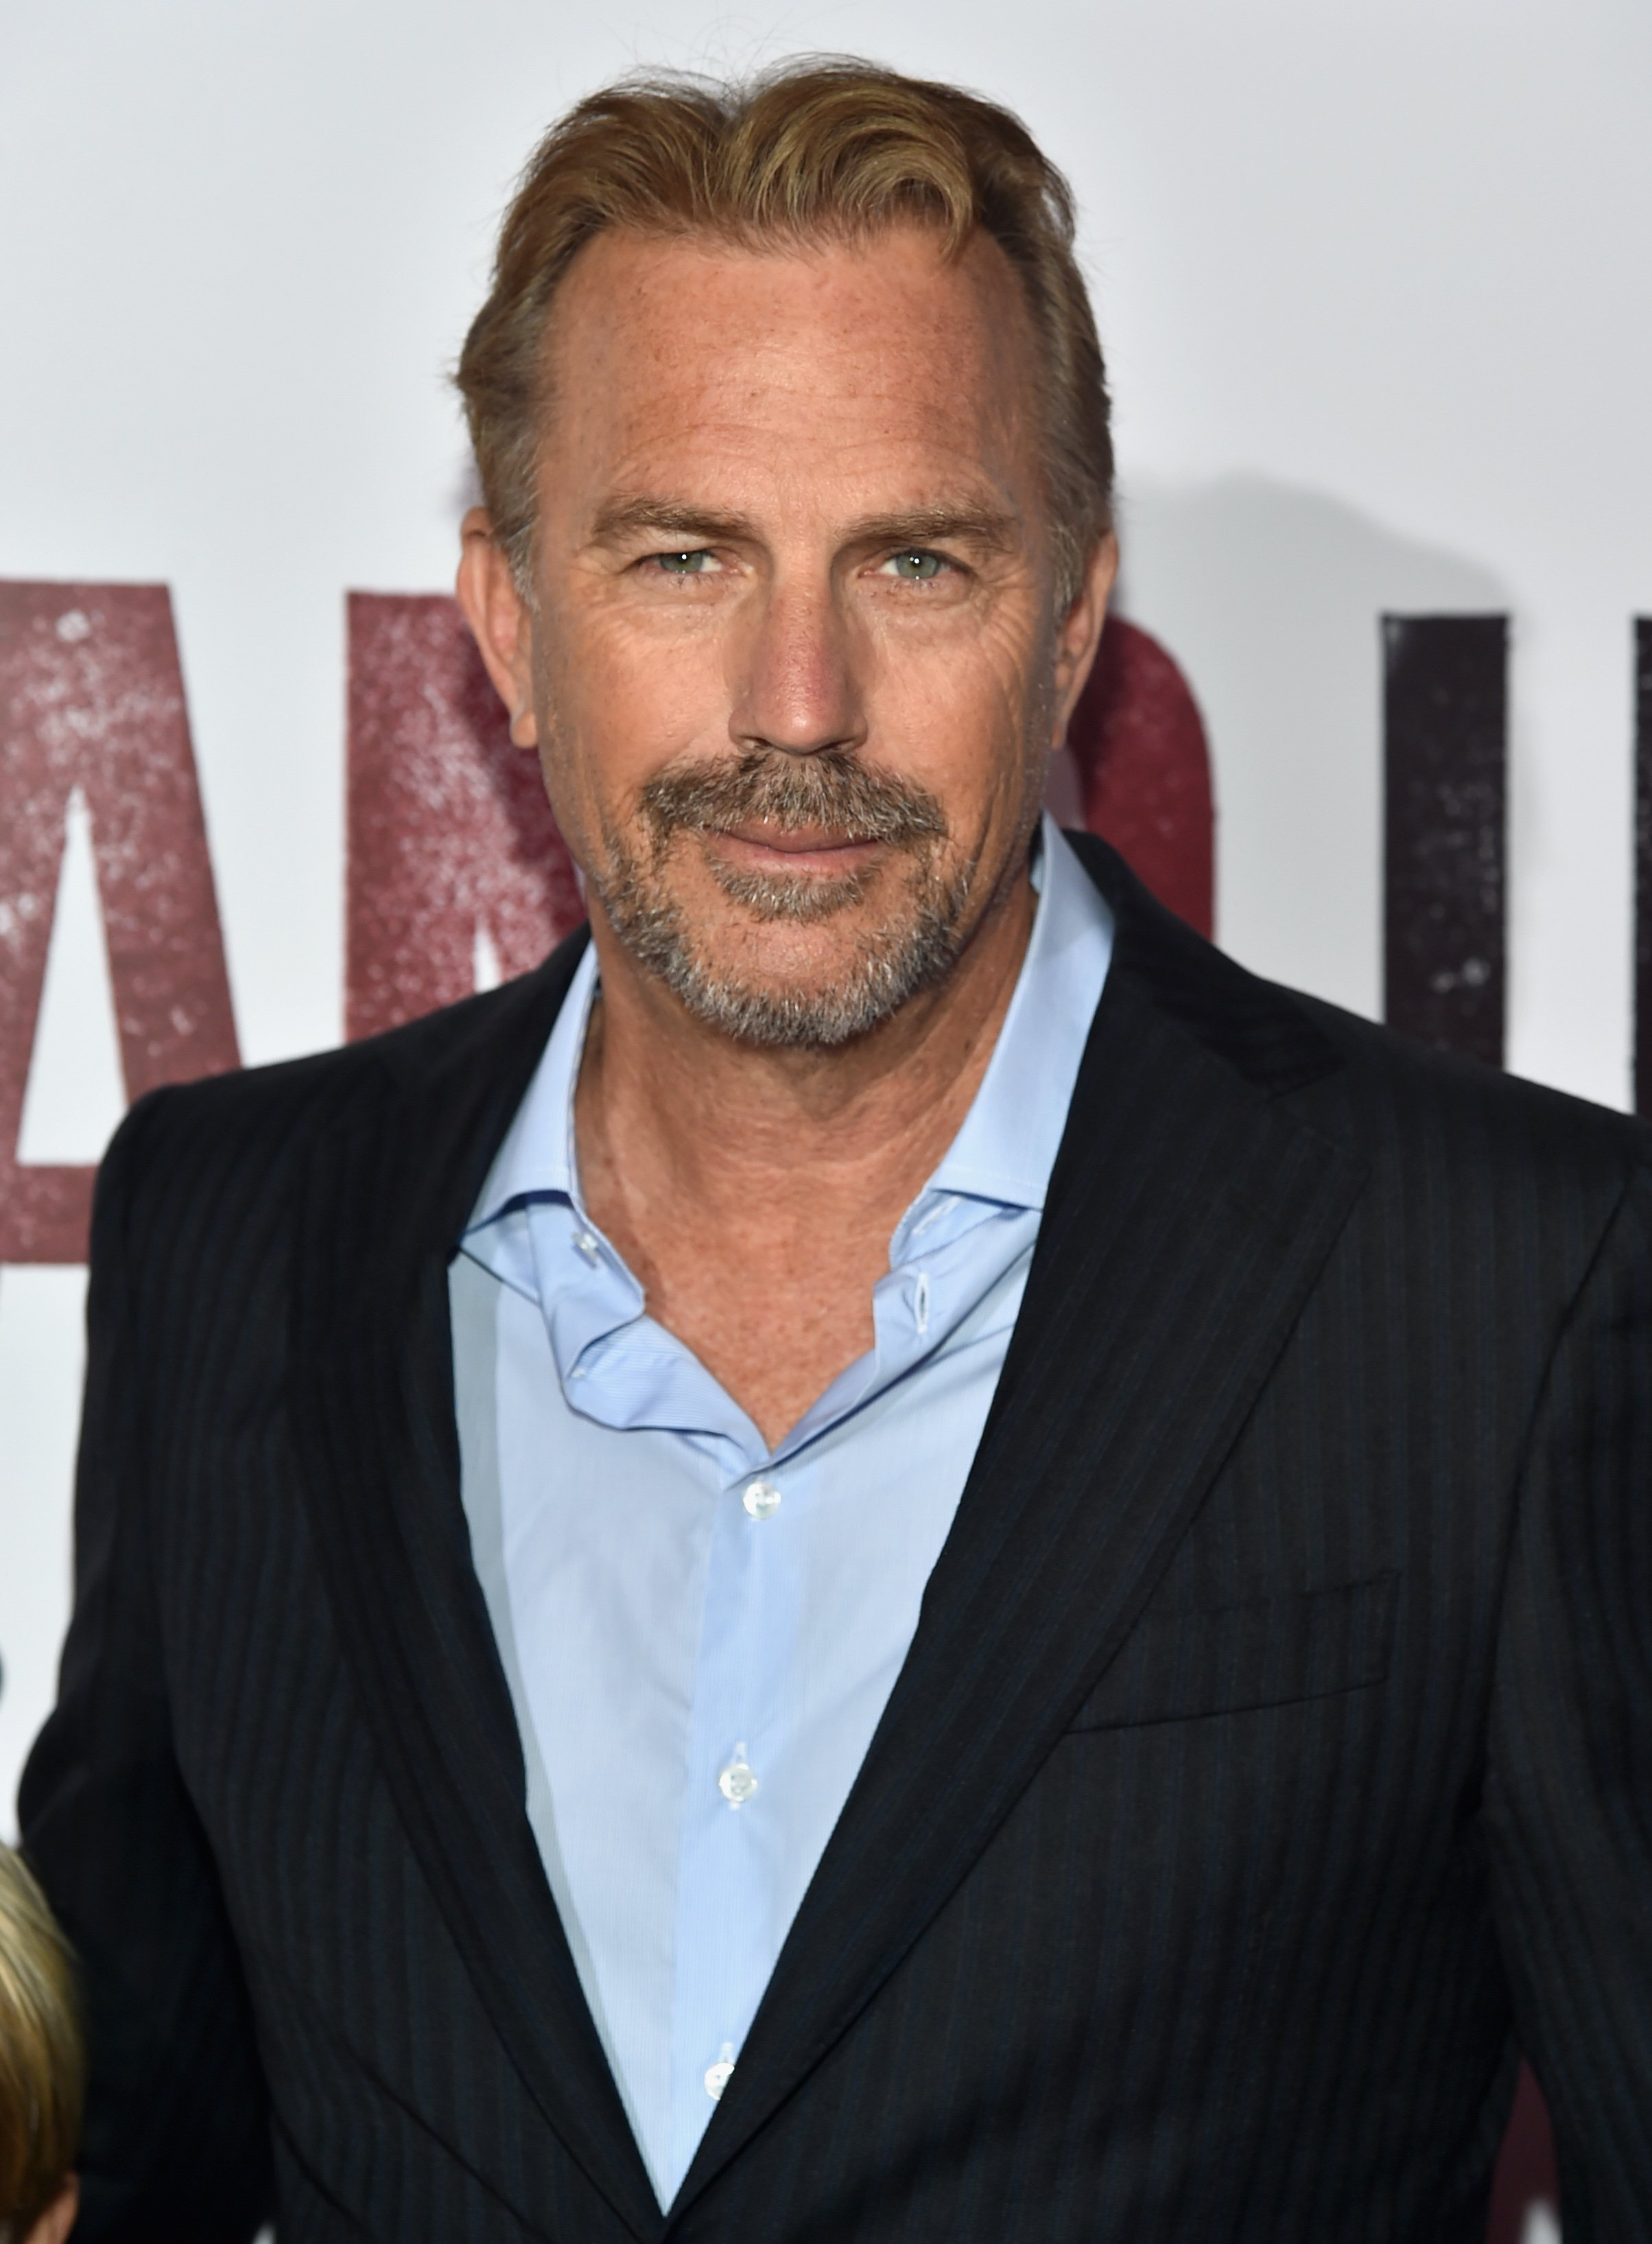 """Actor Kevin Costner attends the world premiere of """"McFarland, USA"""" at The El Capitan Theatre on February 9, 2015 in Hollywood, California 